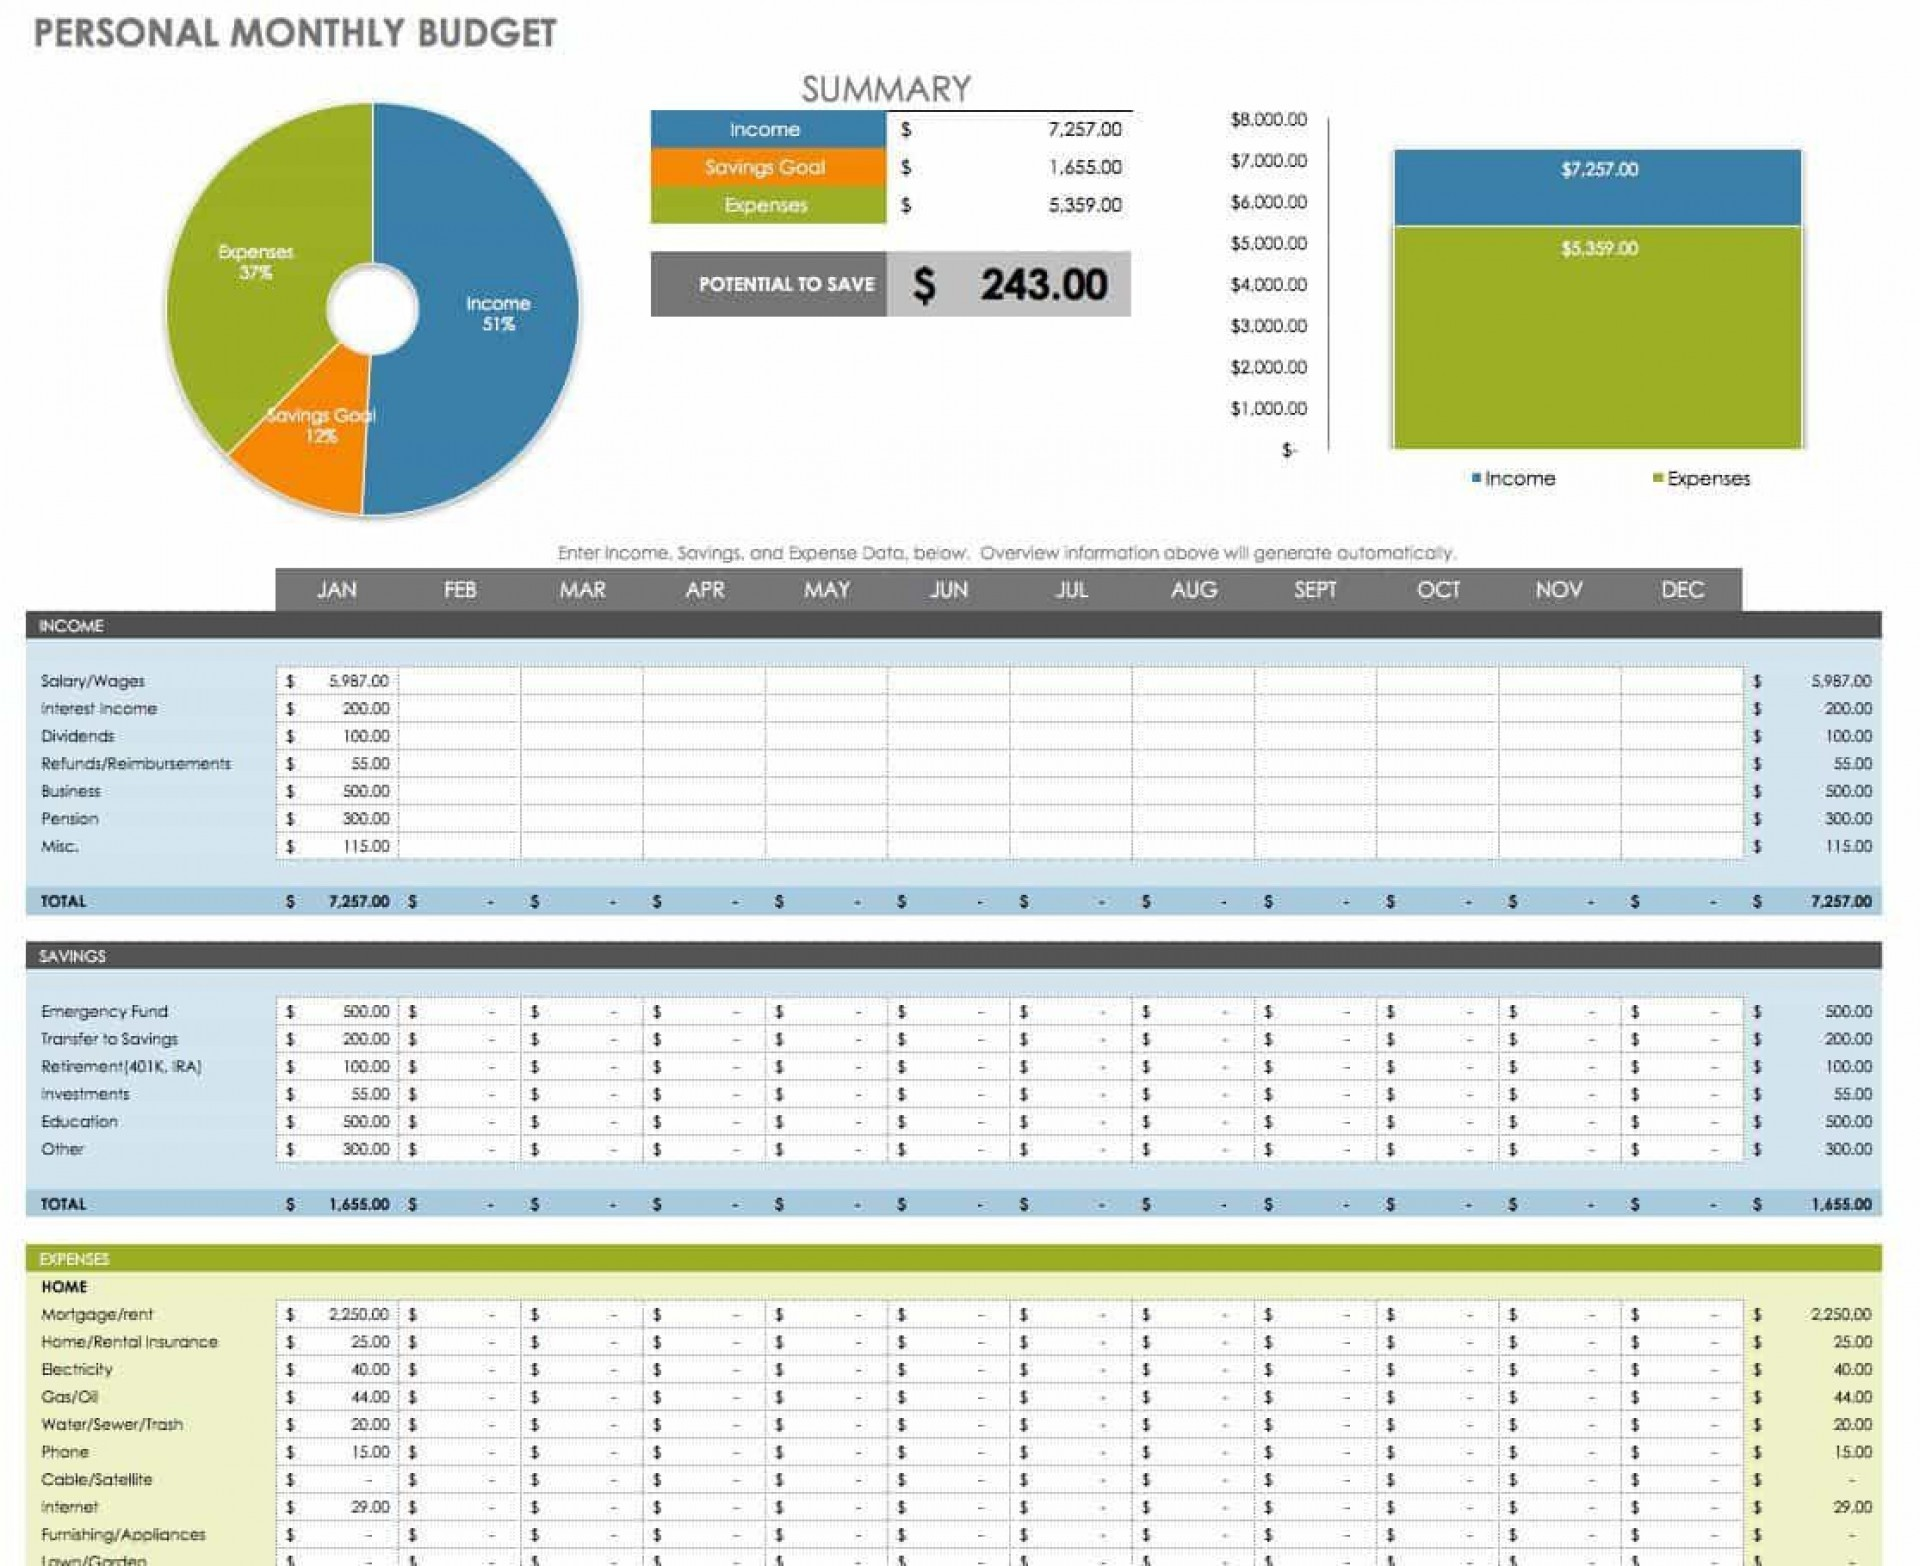 007 Fearsome Financial Plan Template Excel High Resolution  Strategic Busines Simple1920